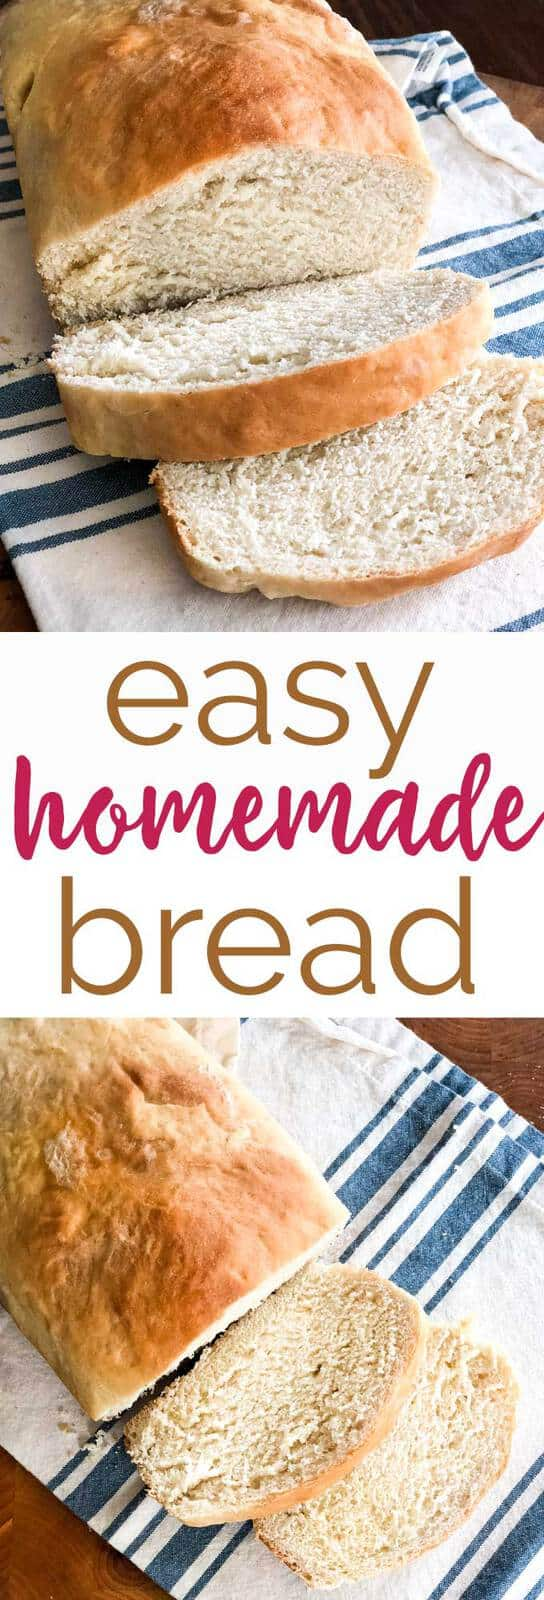 This easy homemade white bread recipe is simple enough for beginner bakers and tastes delicious! #recipe